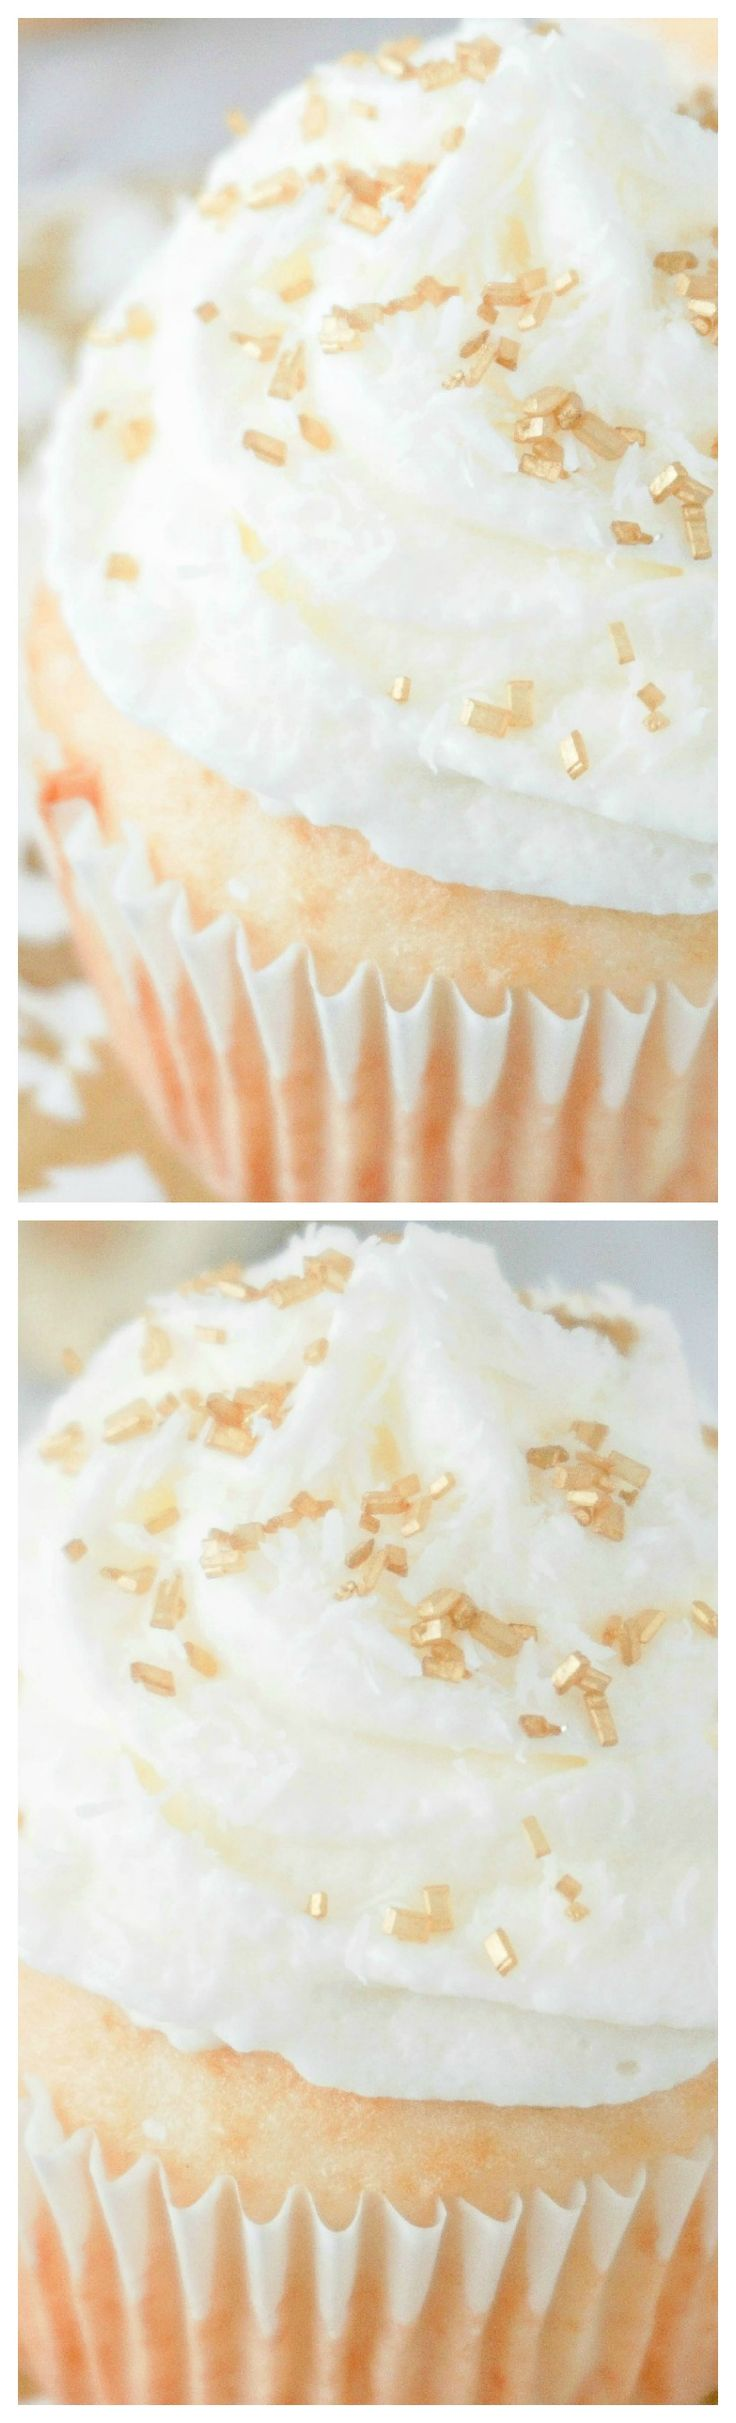 Coconut Champagne New Year's Eve Cupcakes ~ A must have as you count down til midnight with friends and family!